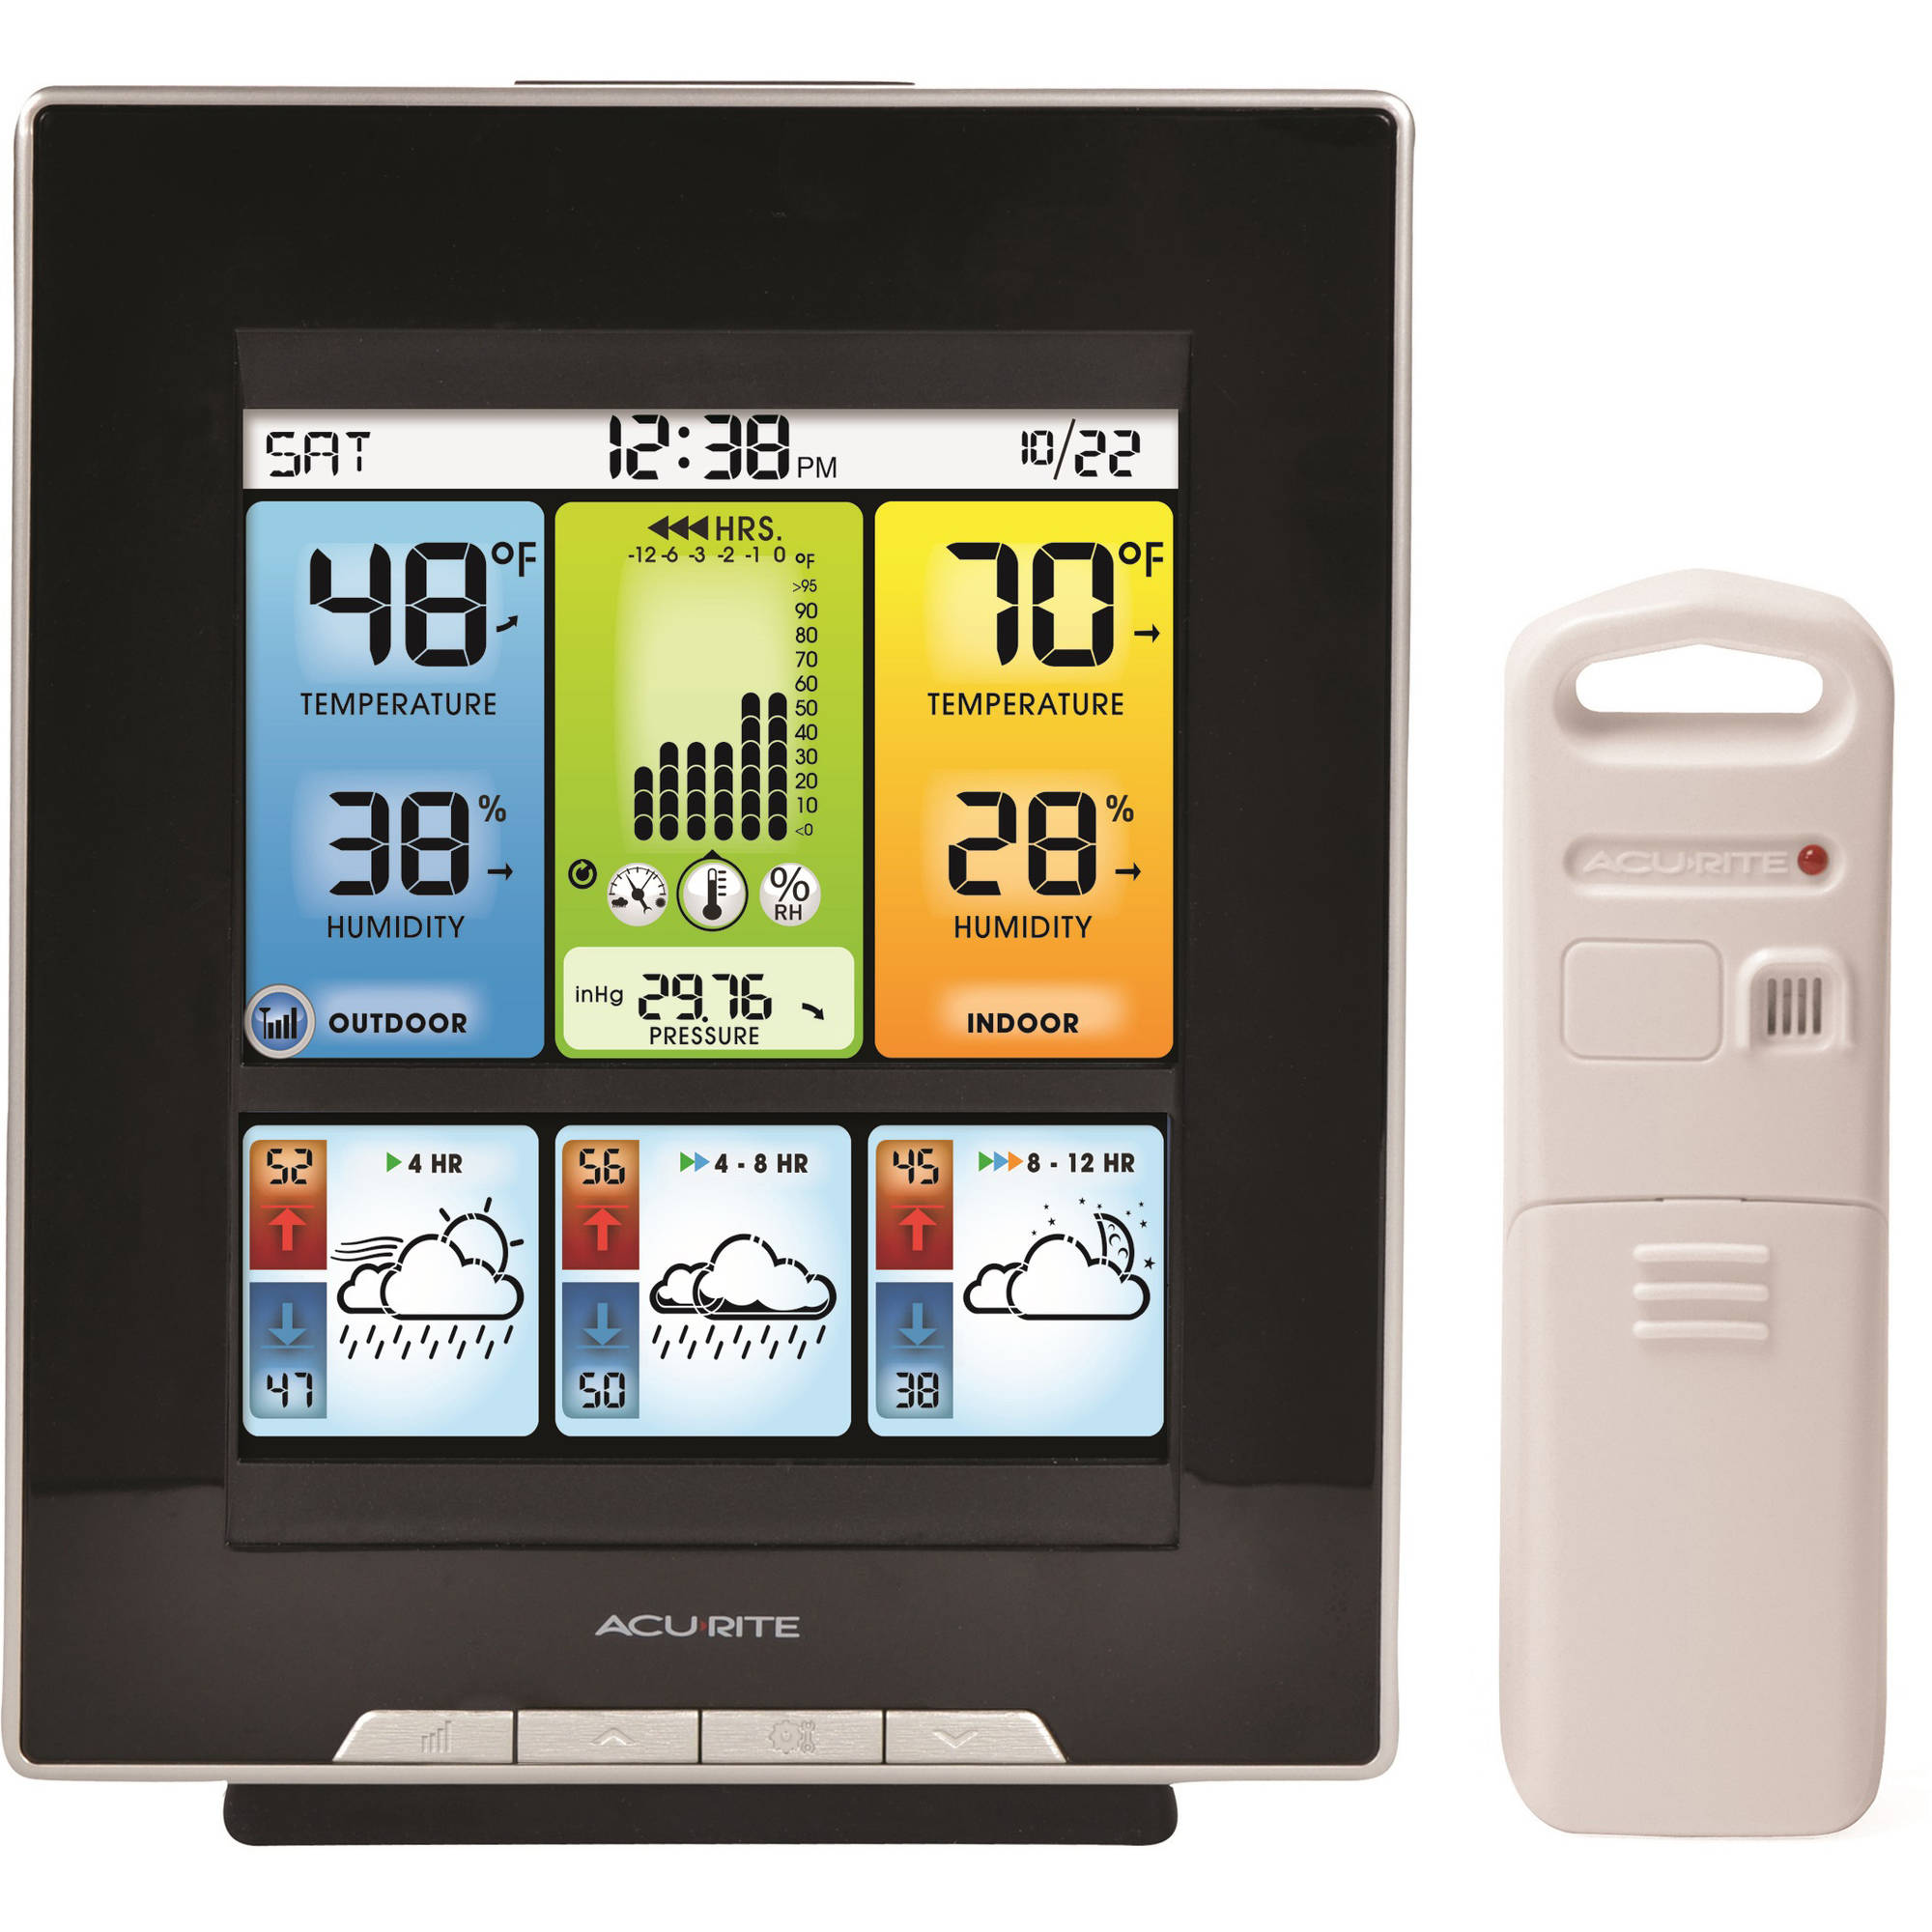 AcuRite Color Weather Station with Morning, Noon and Night Forecast